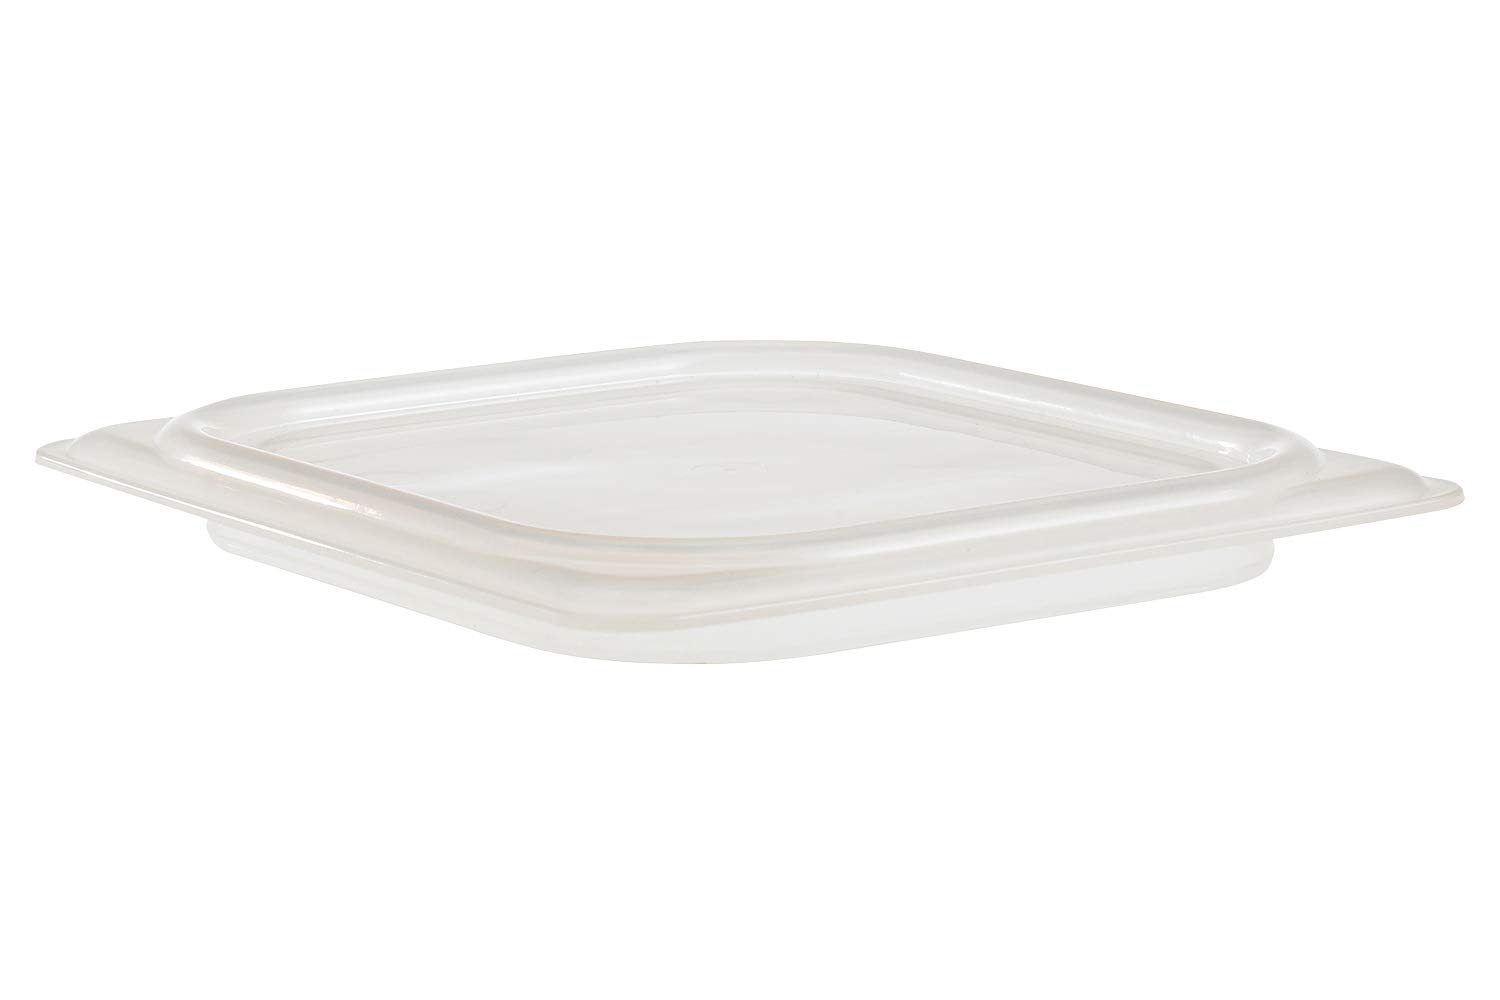 Cambro 60PPCWSC190 Food Pan Seal Cover, 1/6 size (Pack of 6)